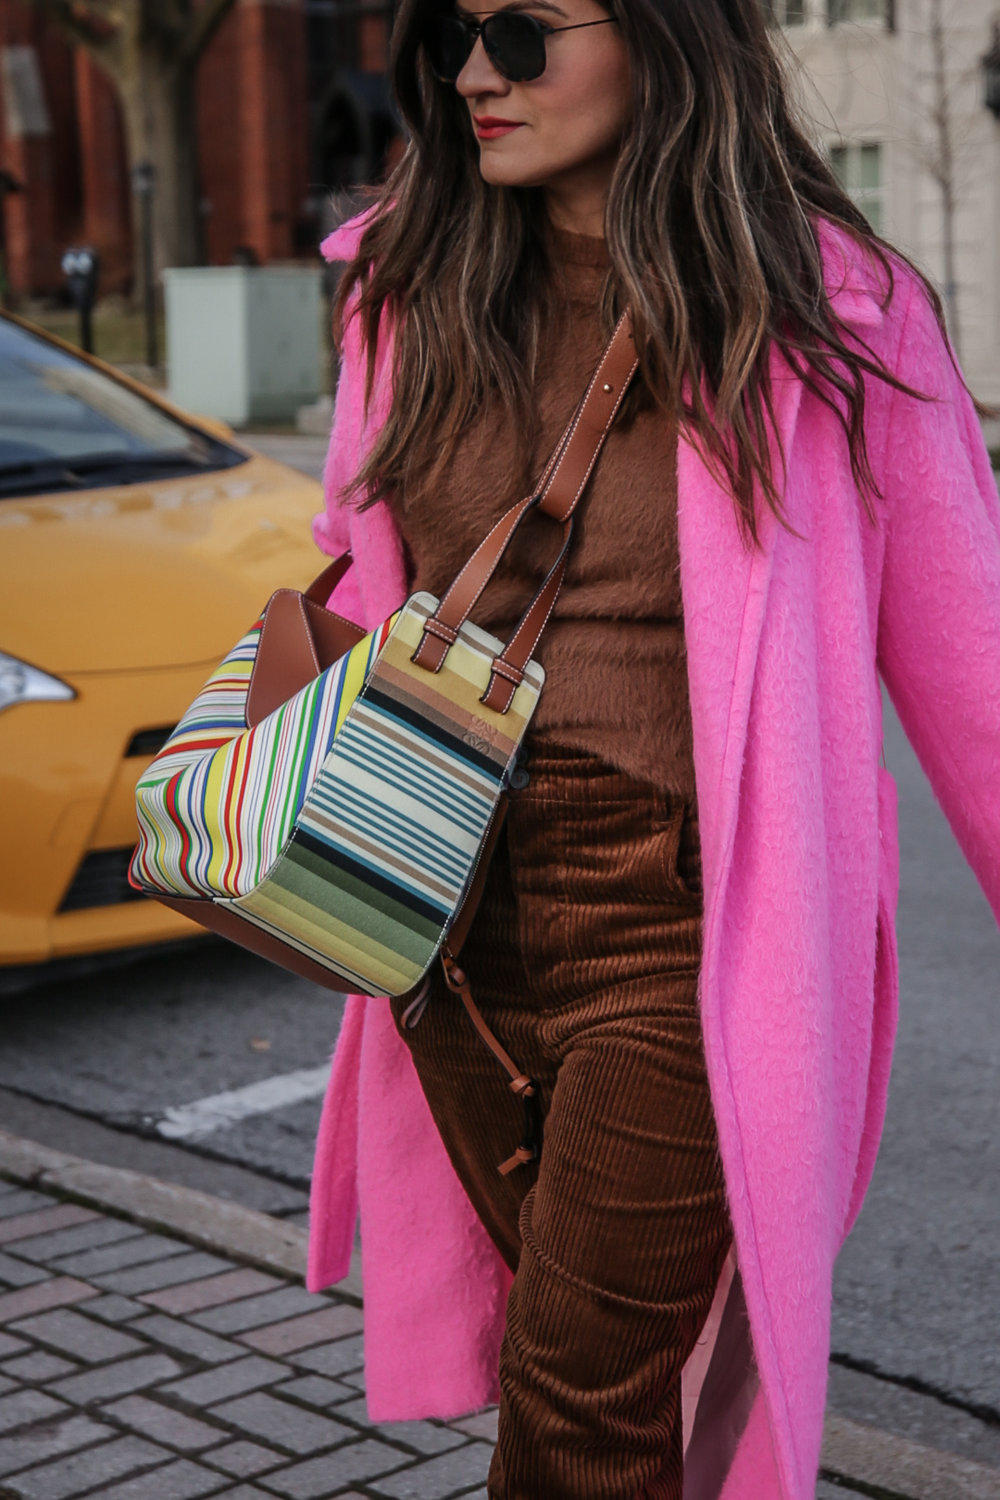 Nathalie Martin wearing Helmut Lang pink belt tie wool coat, brown corduroy pants, Zara brown textured sweater, Prada brown suede mules, Loewe striped Hammock bag, Bonlook Class sunglasses, street style, woahstyle.com_5172.jpg